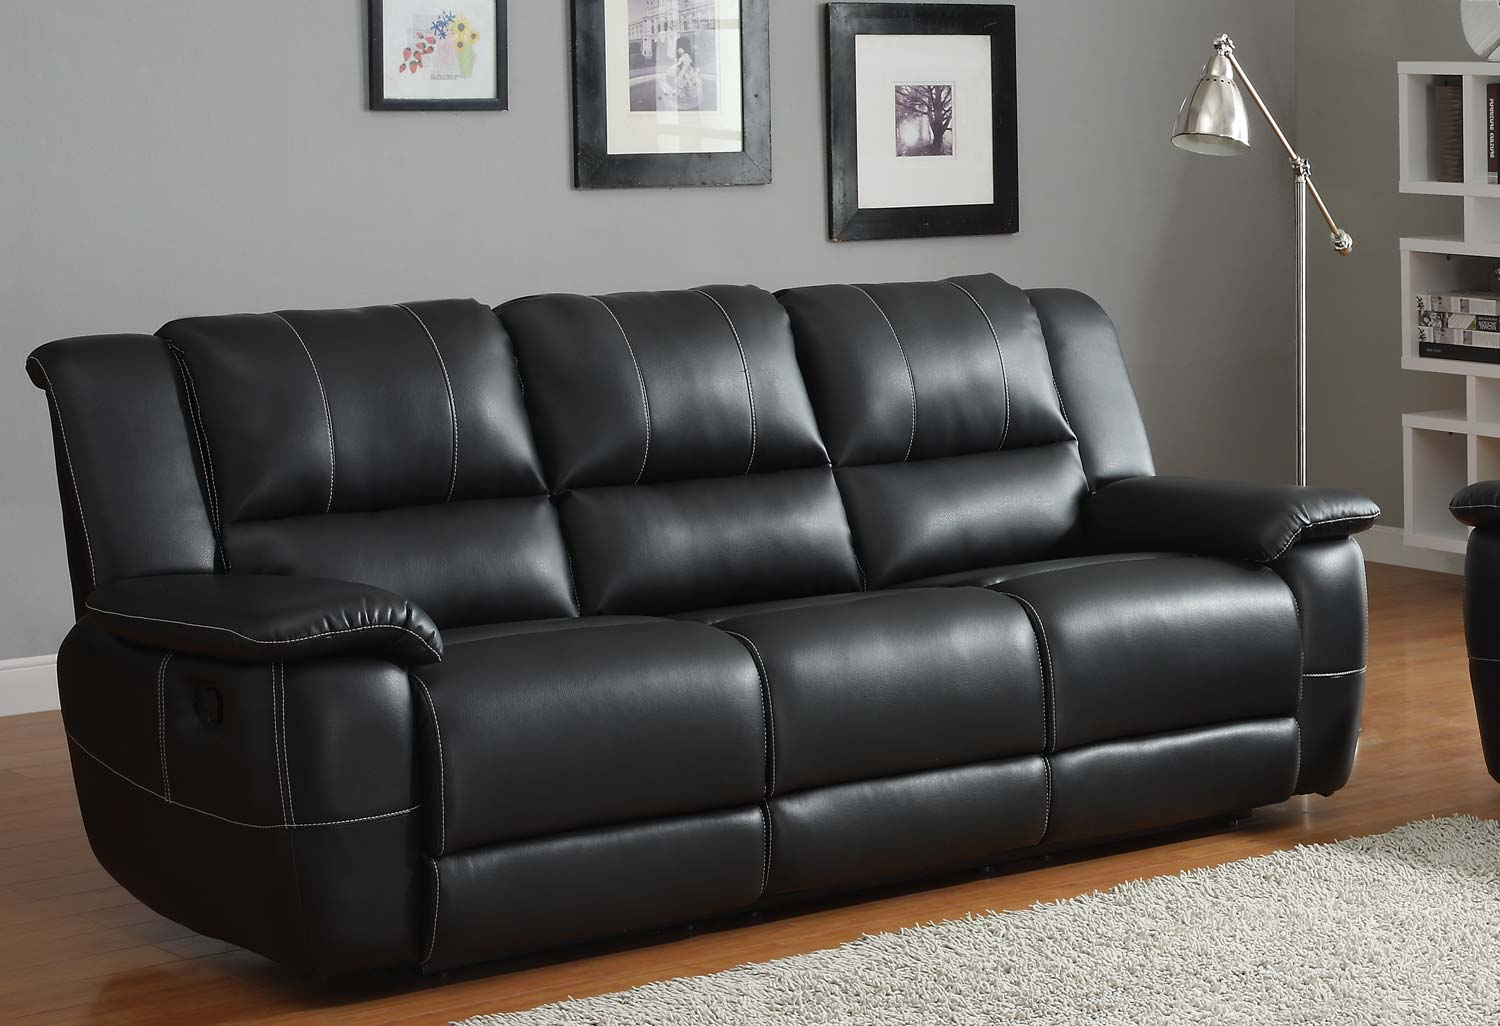 Homelegance Cantrell Sofa Double Recliner Black Bonded